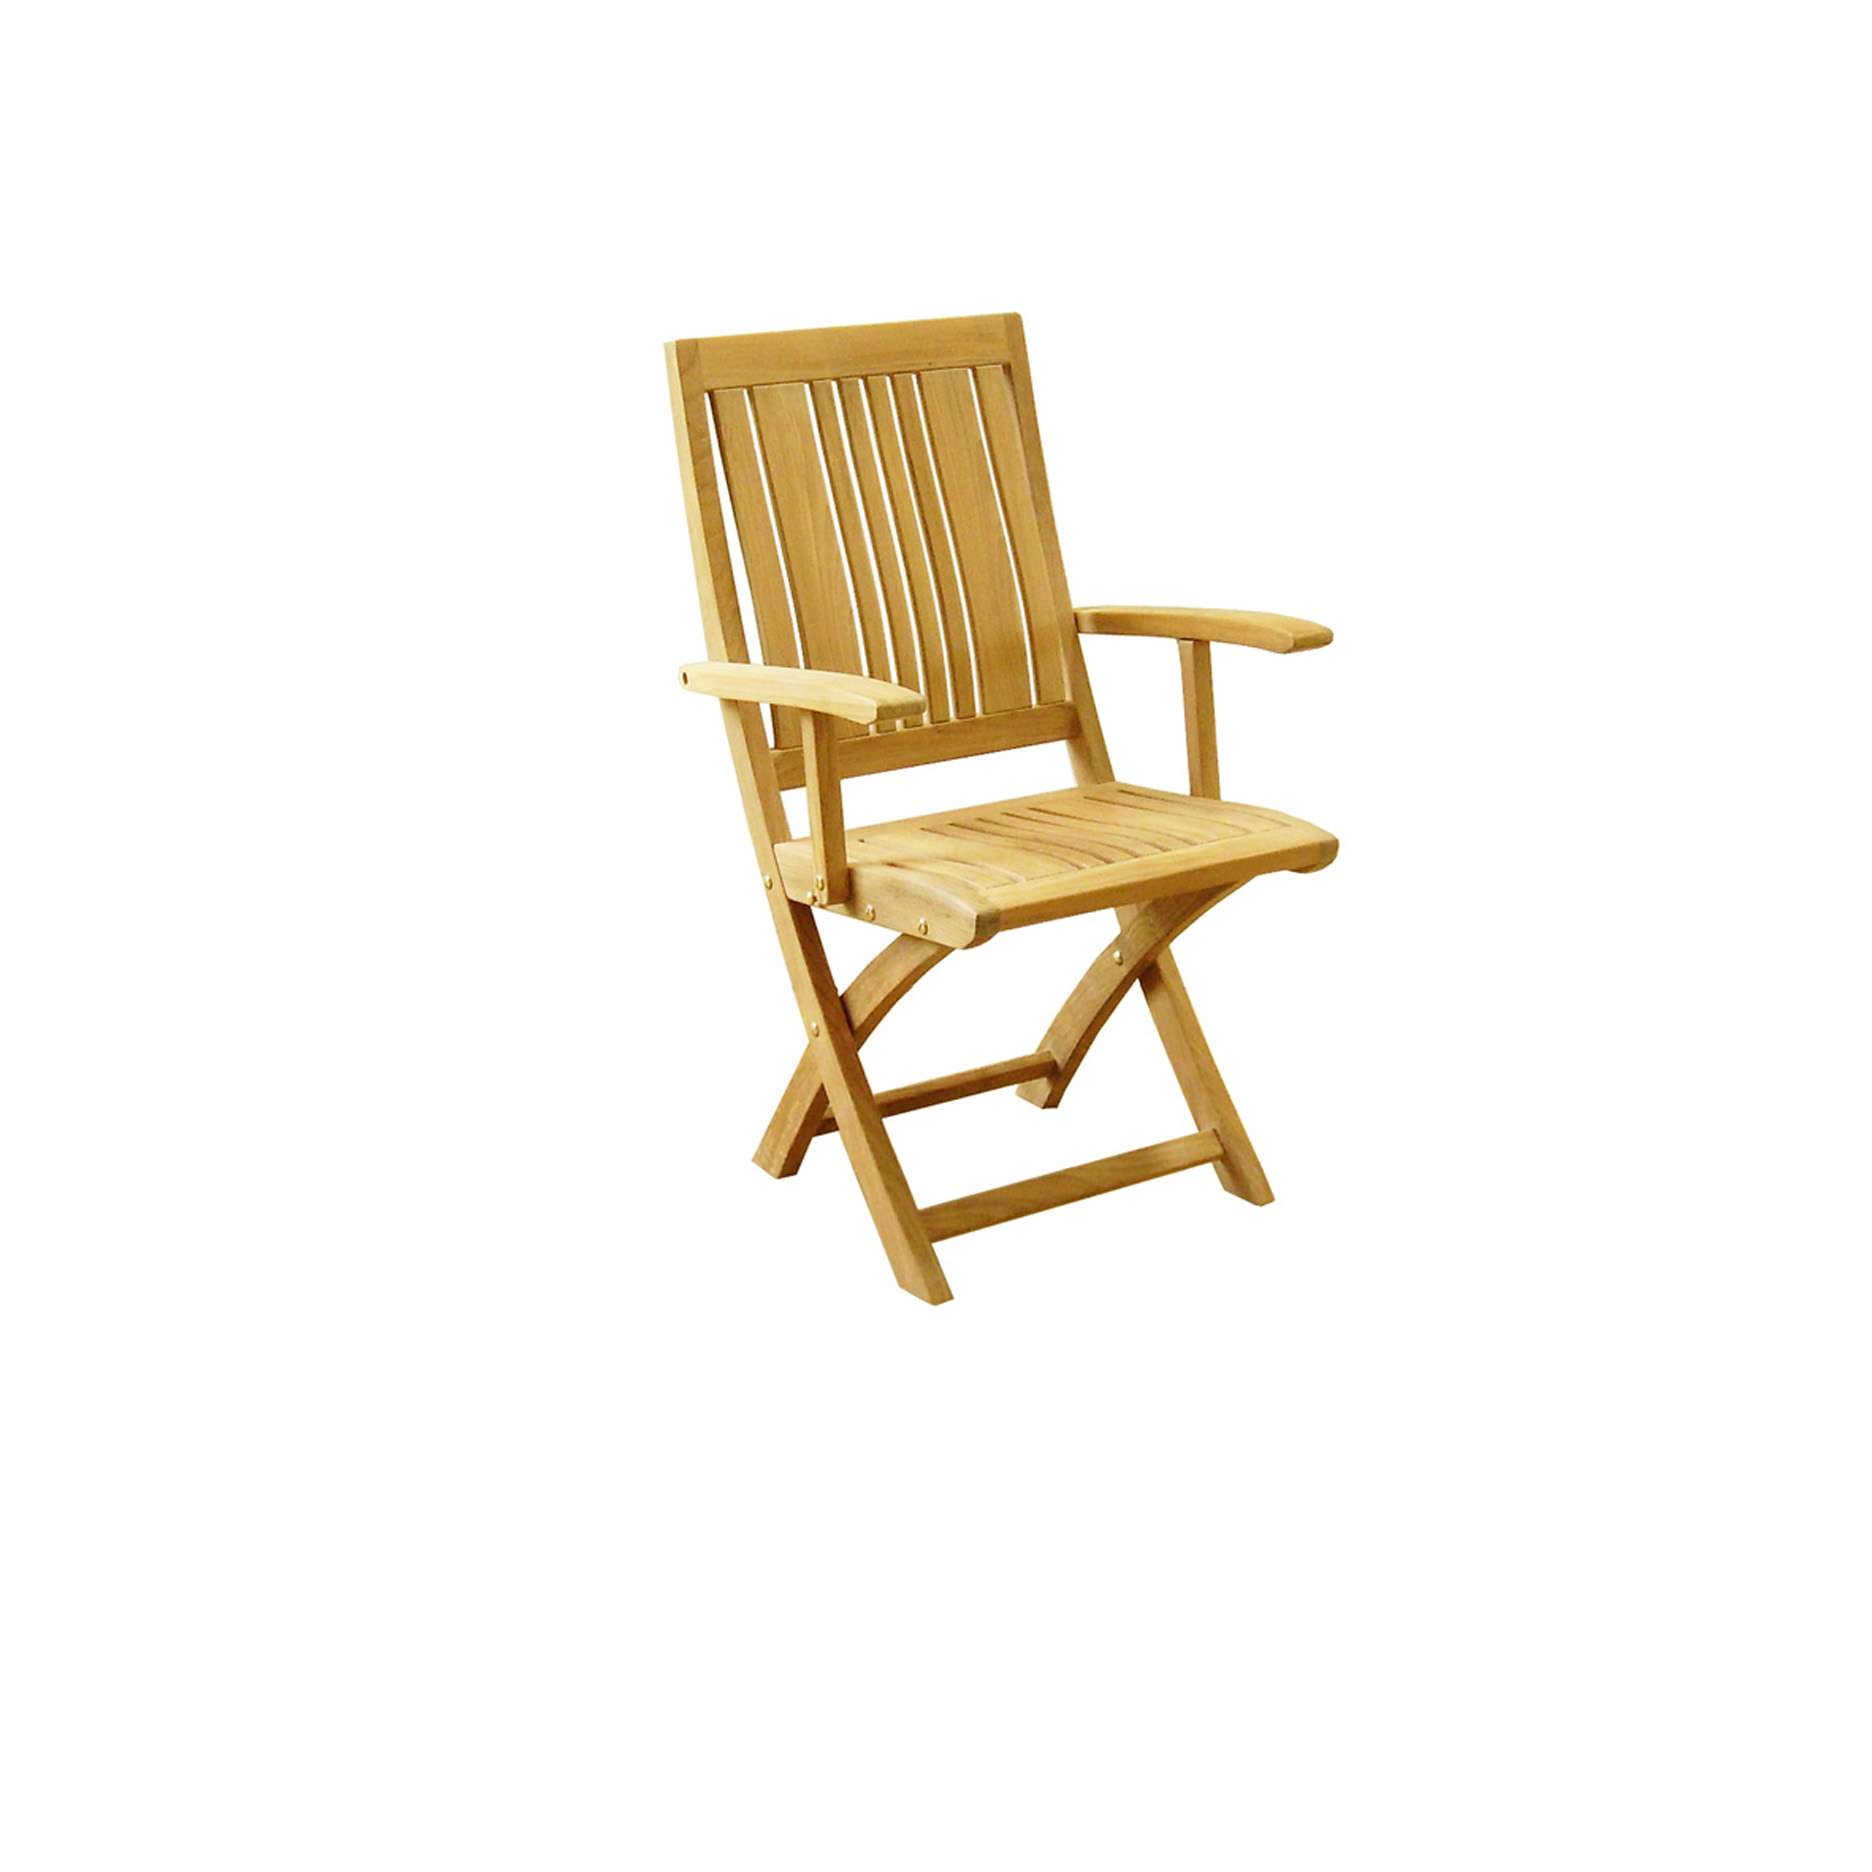 quality folding chairs rocking teak chair arm cosmo asia concept high